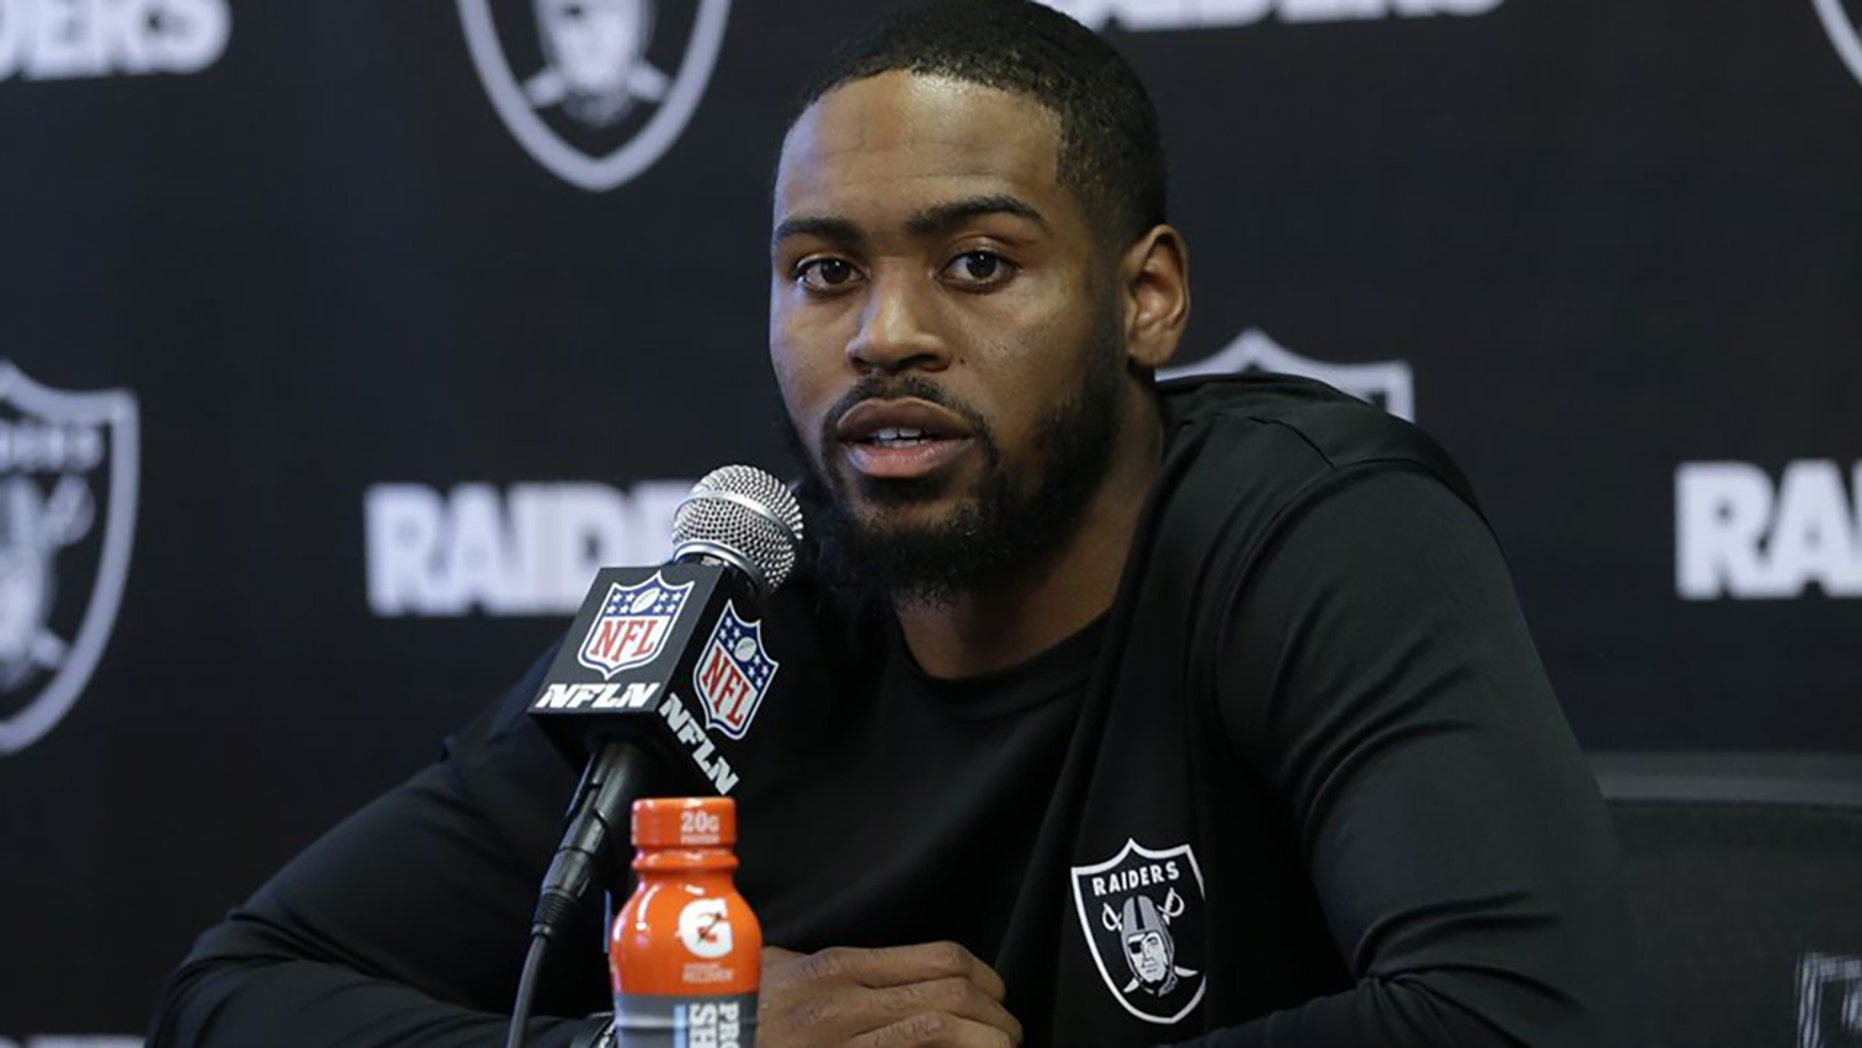 Gareon Conley, 23, of the Oakland Raiders is suing a woman who accused him of sexual assault two days before the 2017 NFL Draft, reports said.